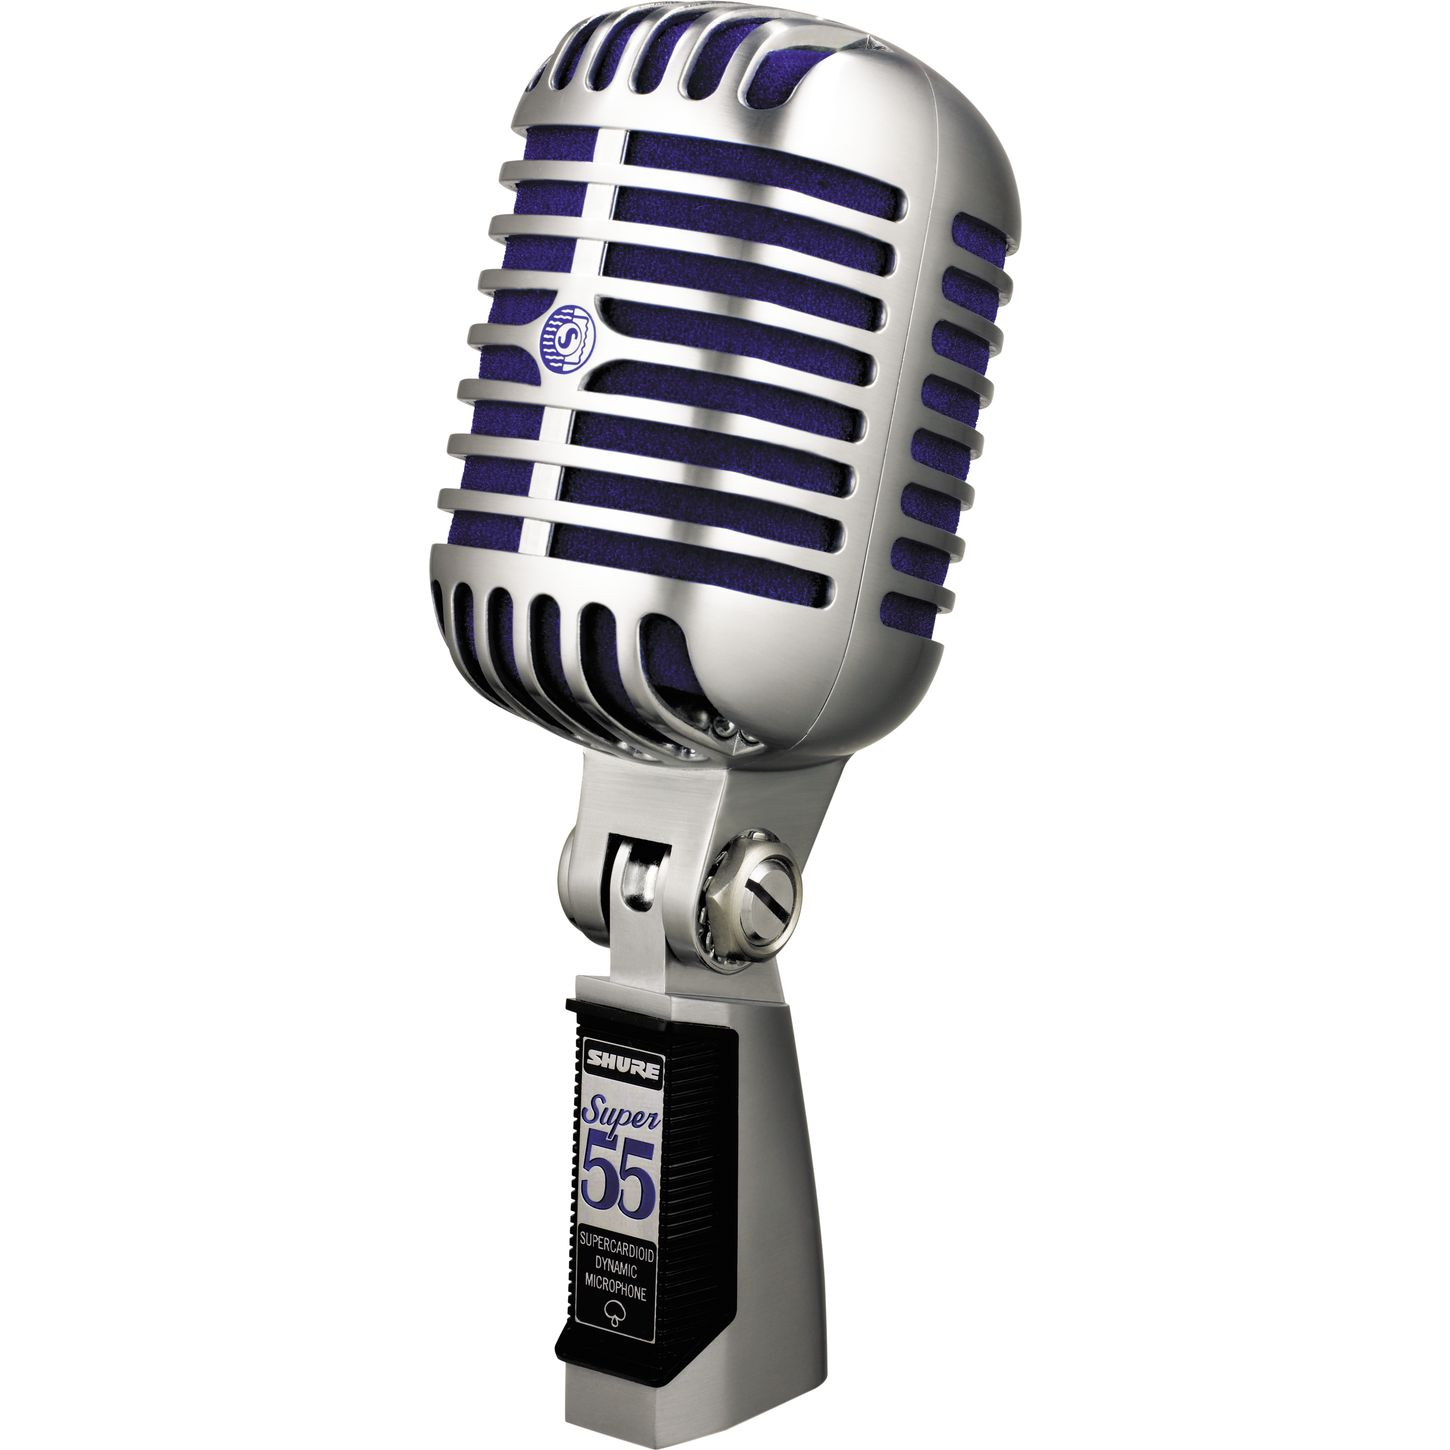 Microphone stand spotlight clipart cliparts and others art